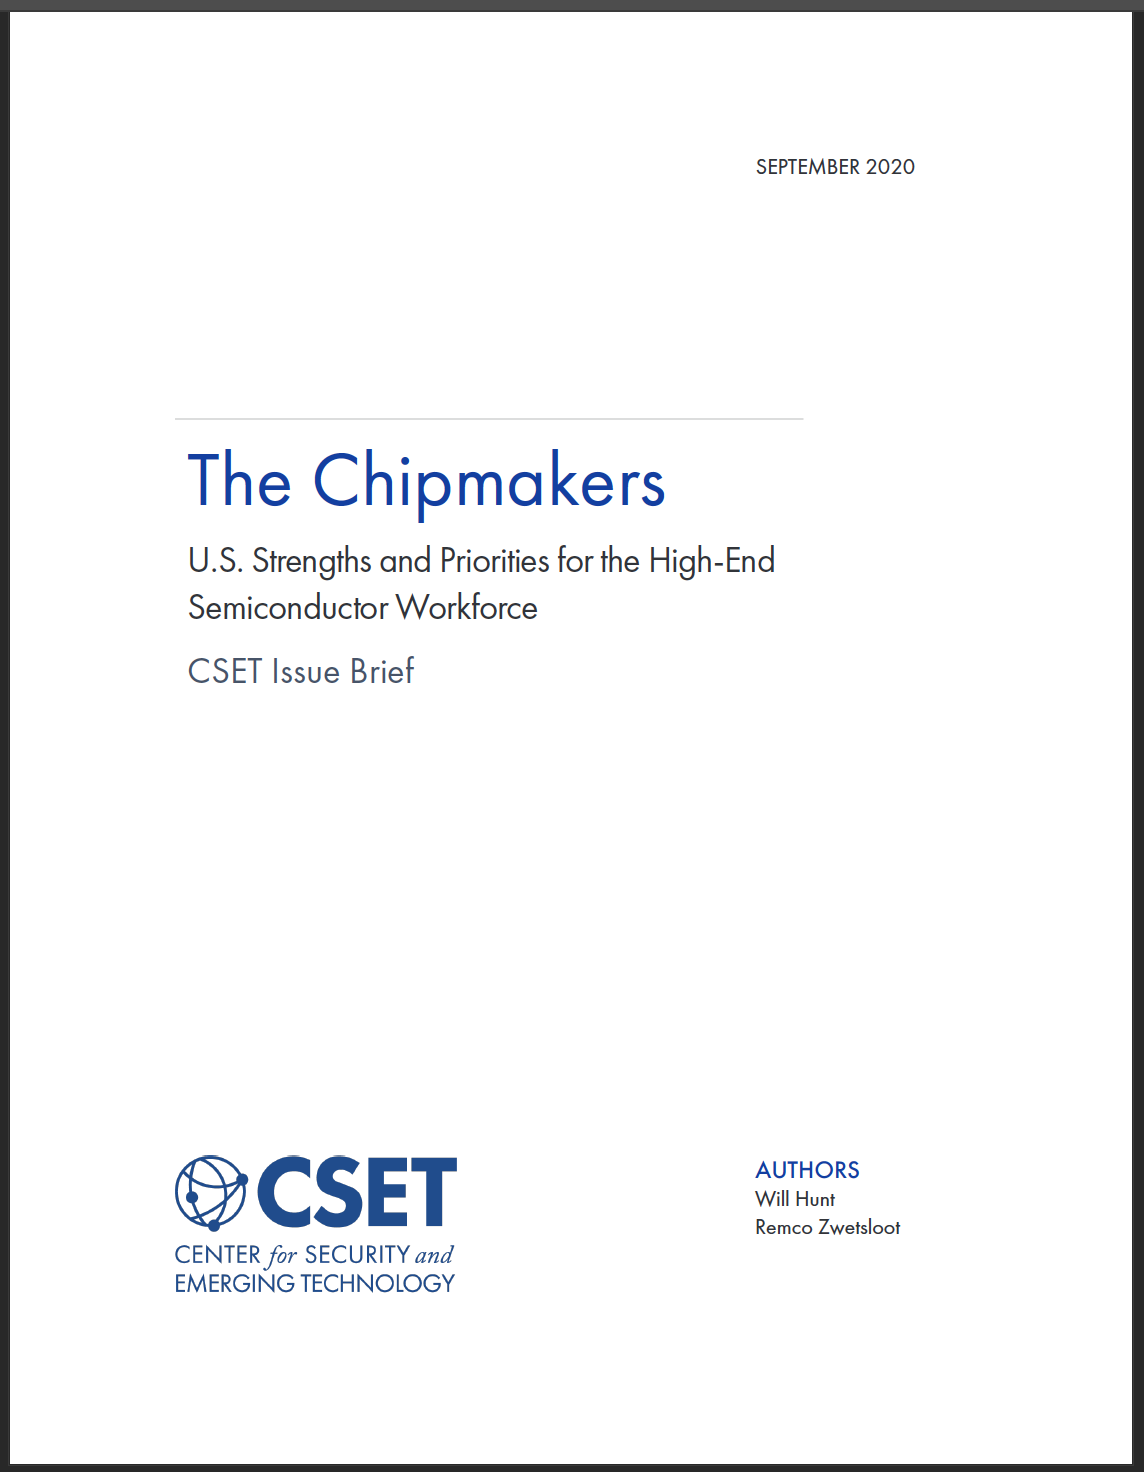 Chipmakers Report Cover